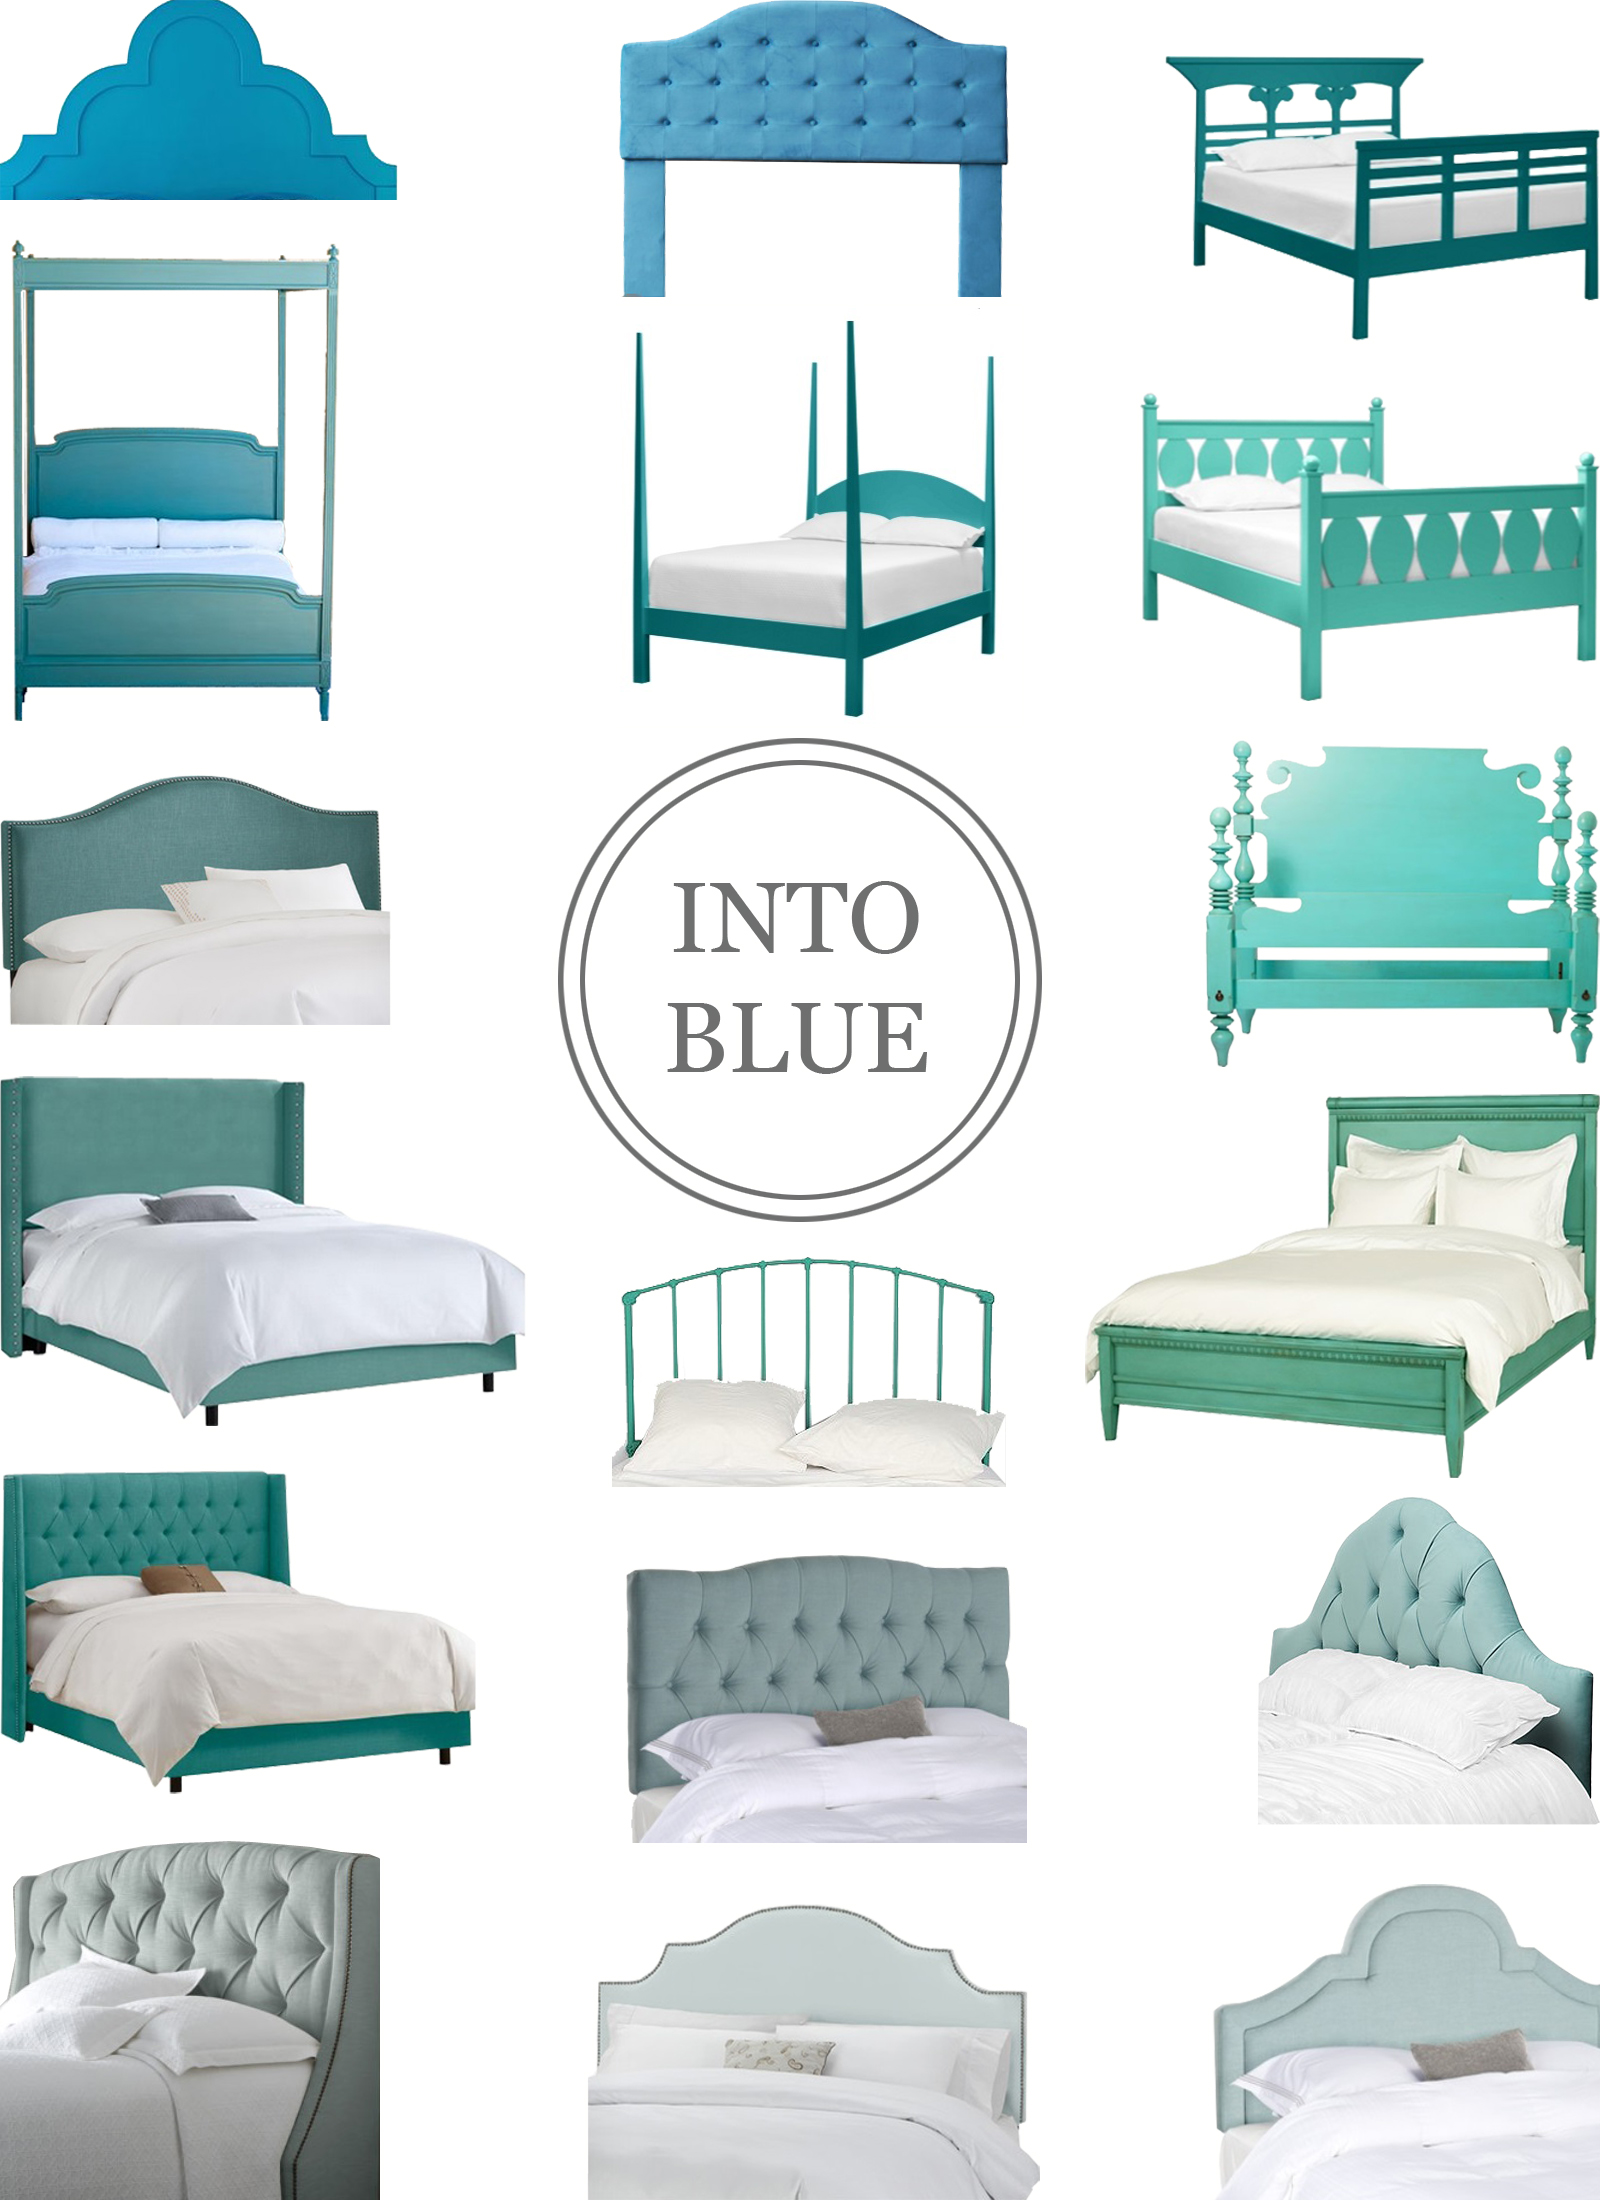 Top_picks_turquoise_beds